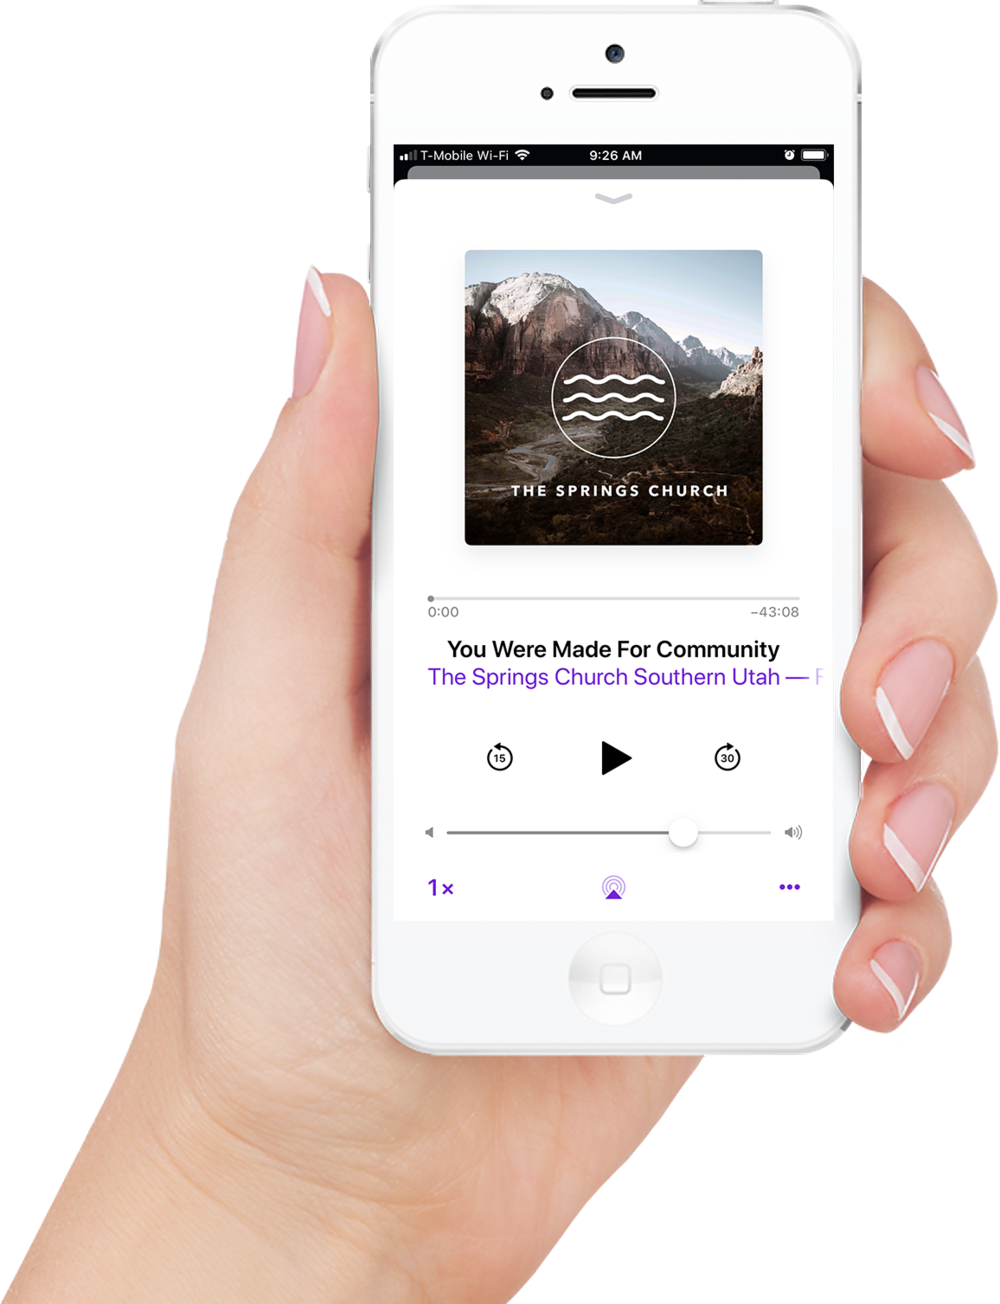 CHECK OUT OUR PODCAST - We have made our Sunday services available for you by podcast. Click the link below and it will take you right there!